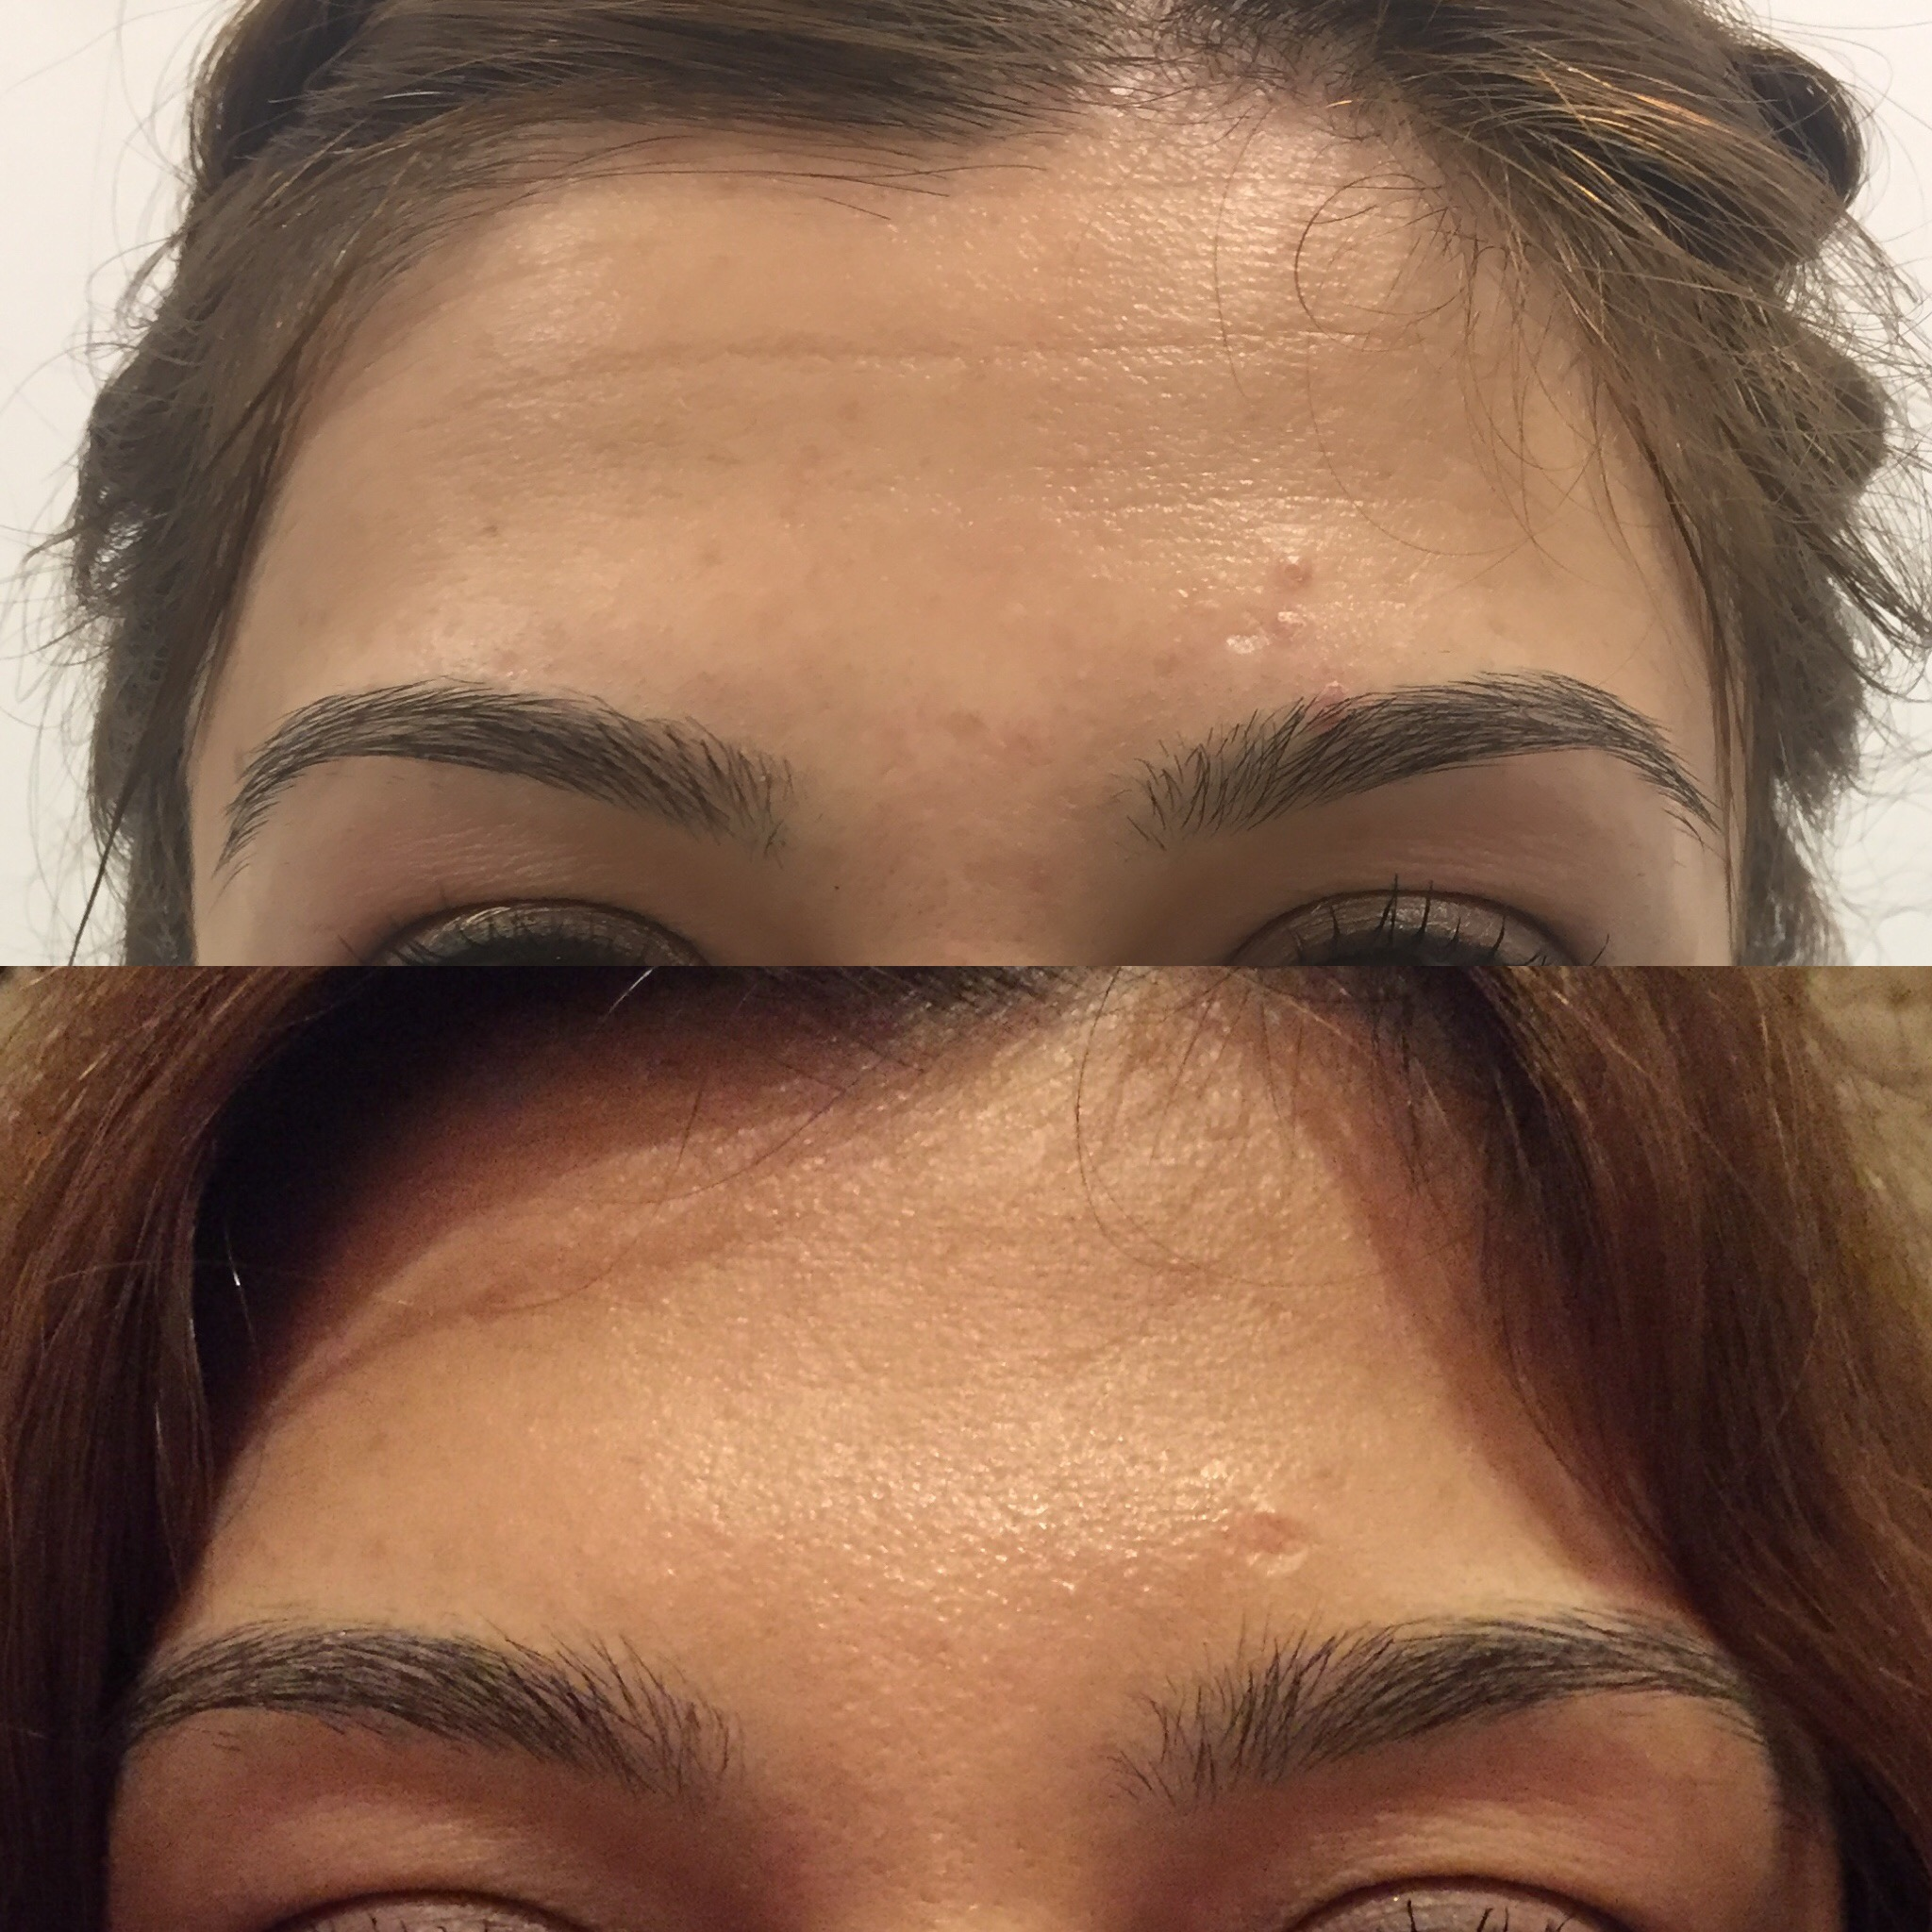 Preventative anti-wrinkle injections